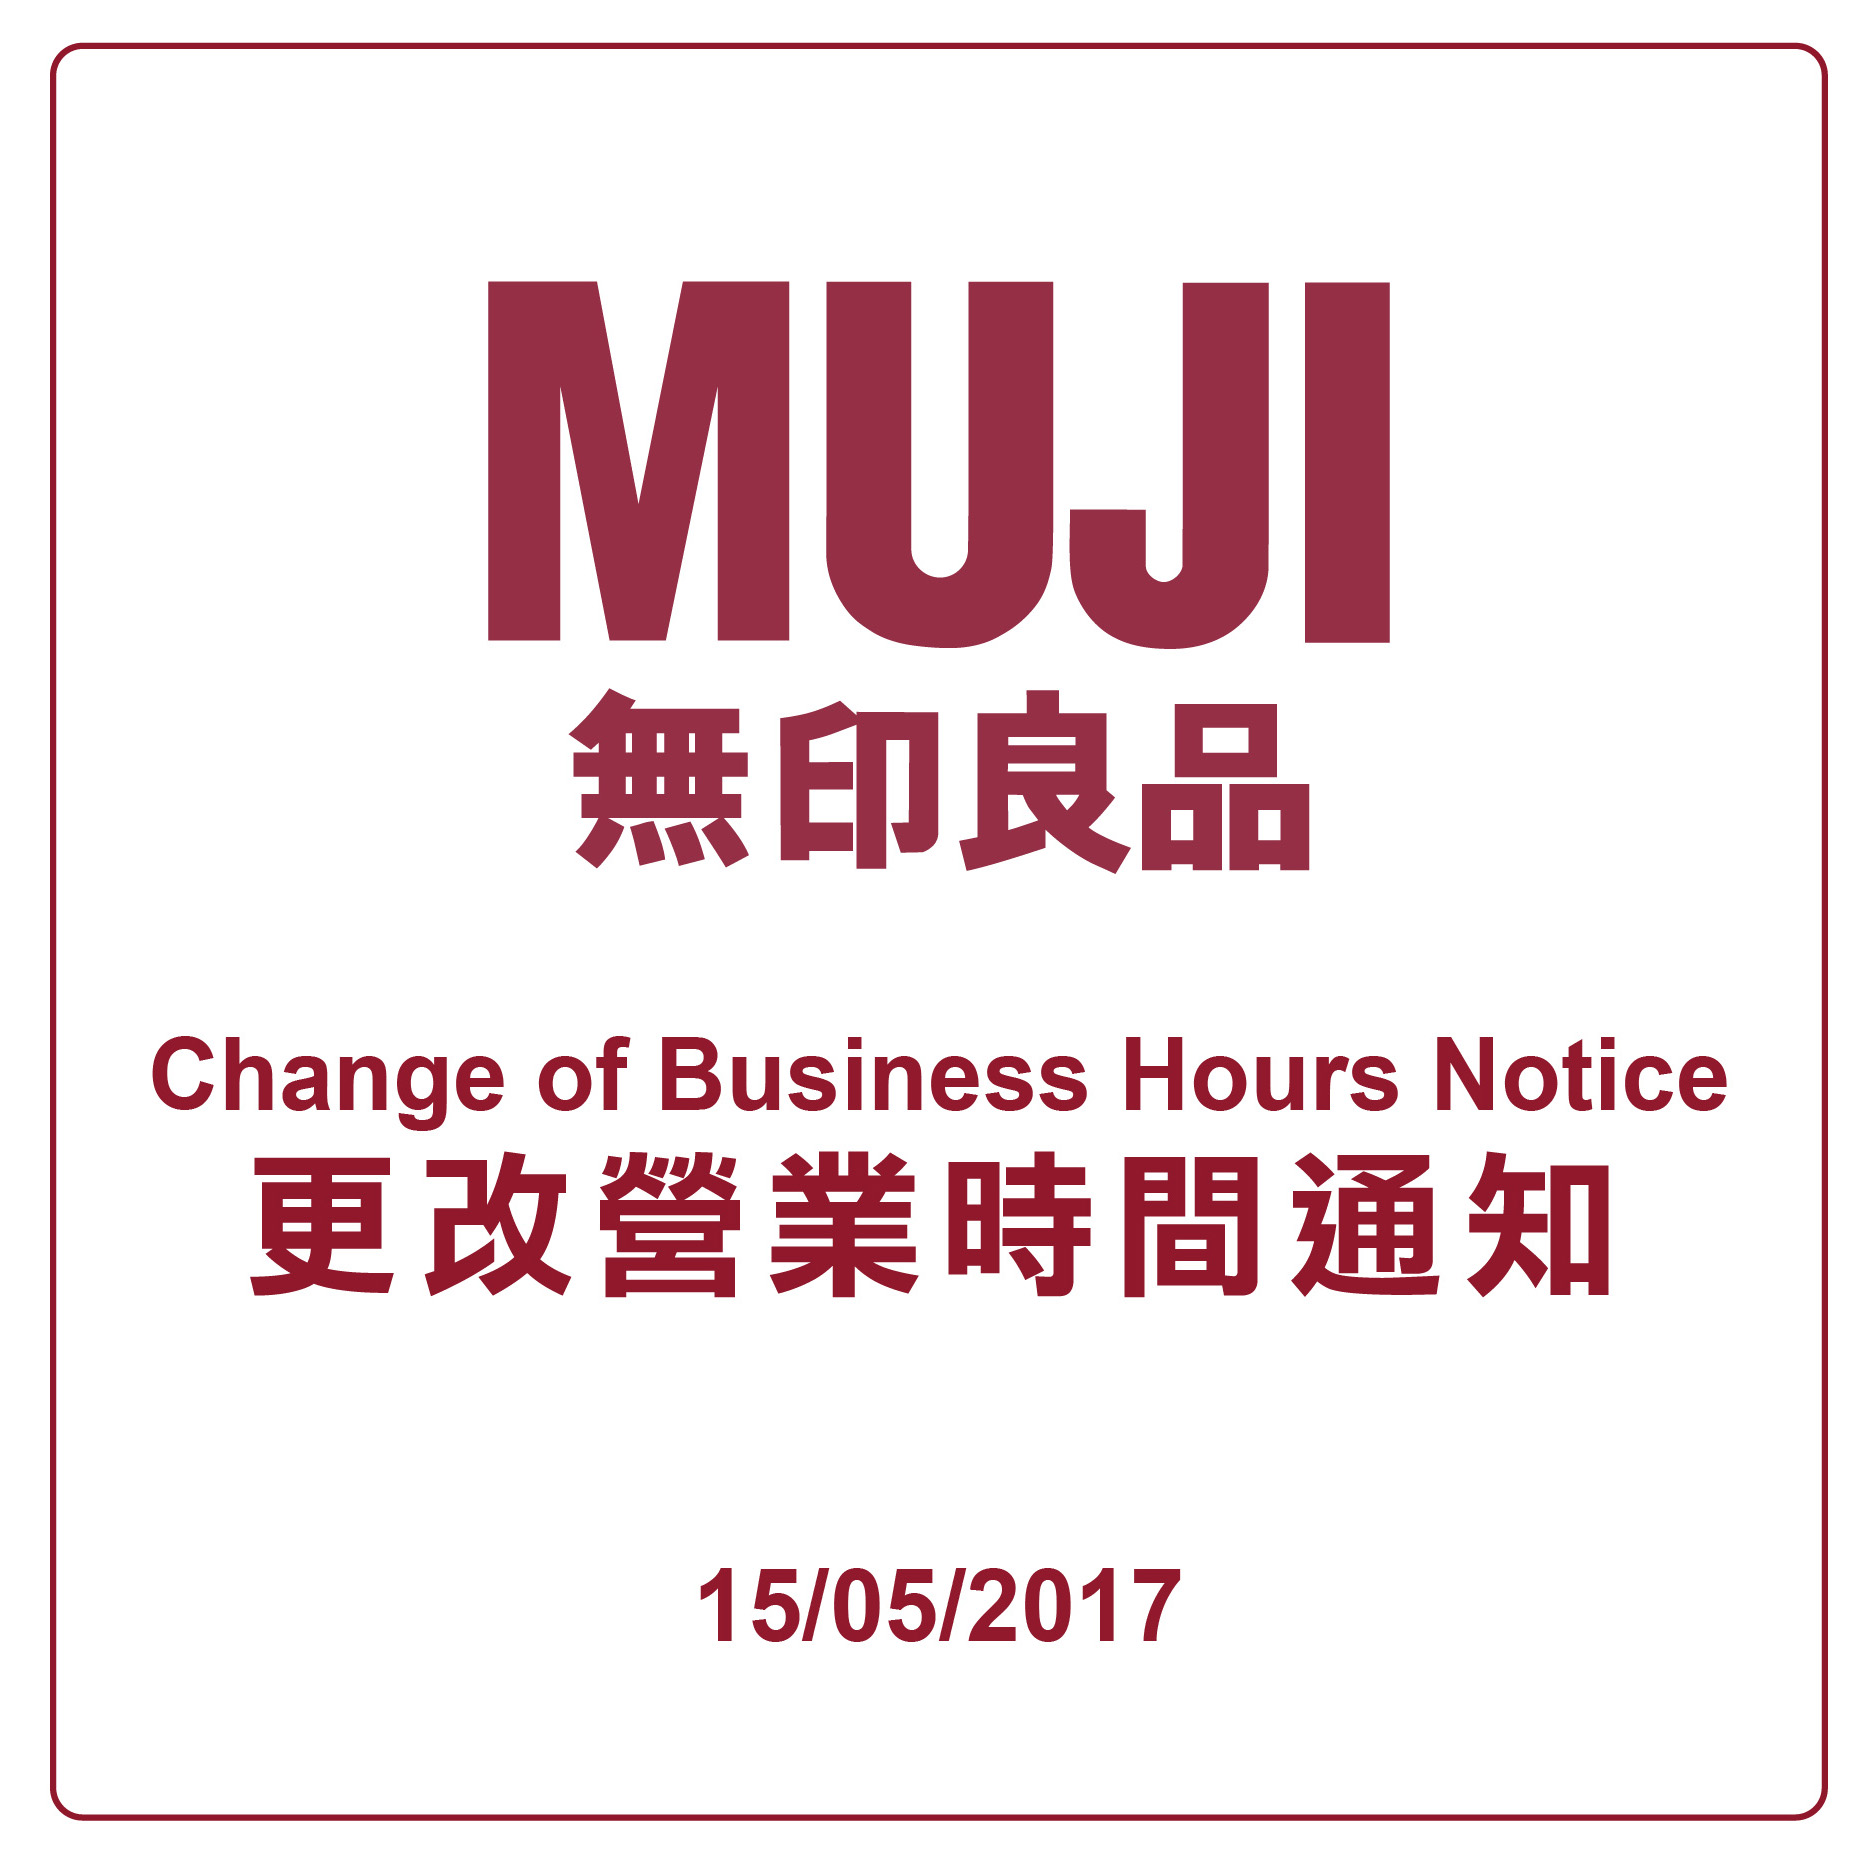 05 15 Early Closure of Business Hours Notice | News | MUJI